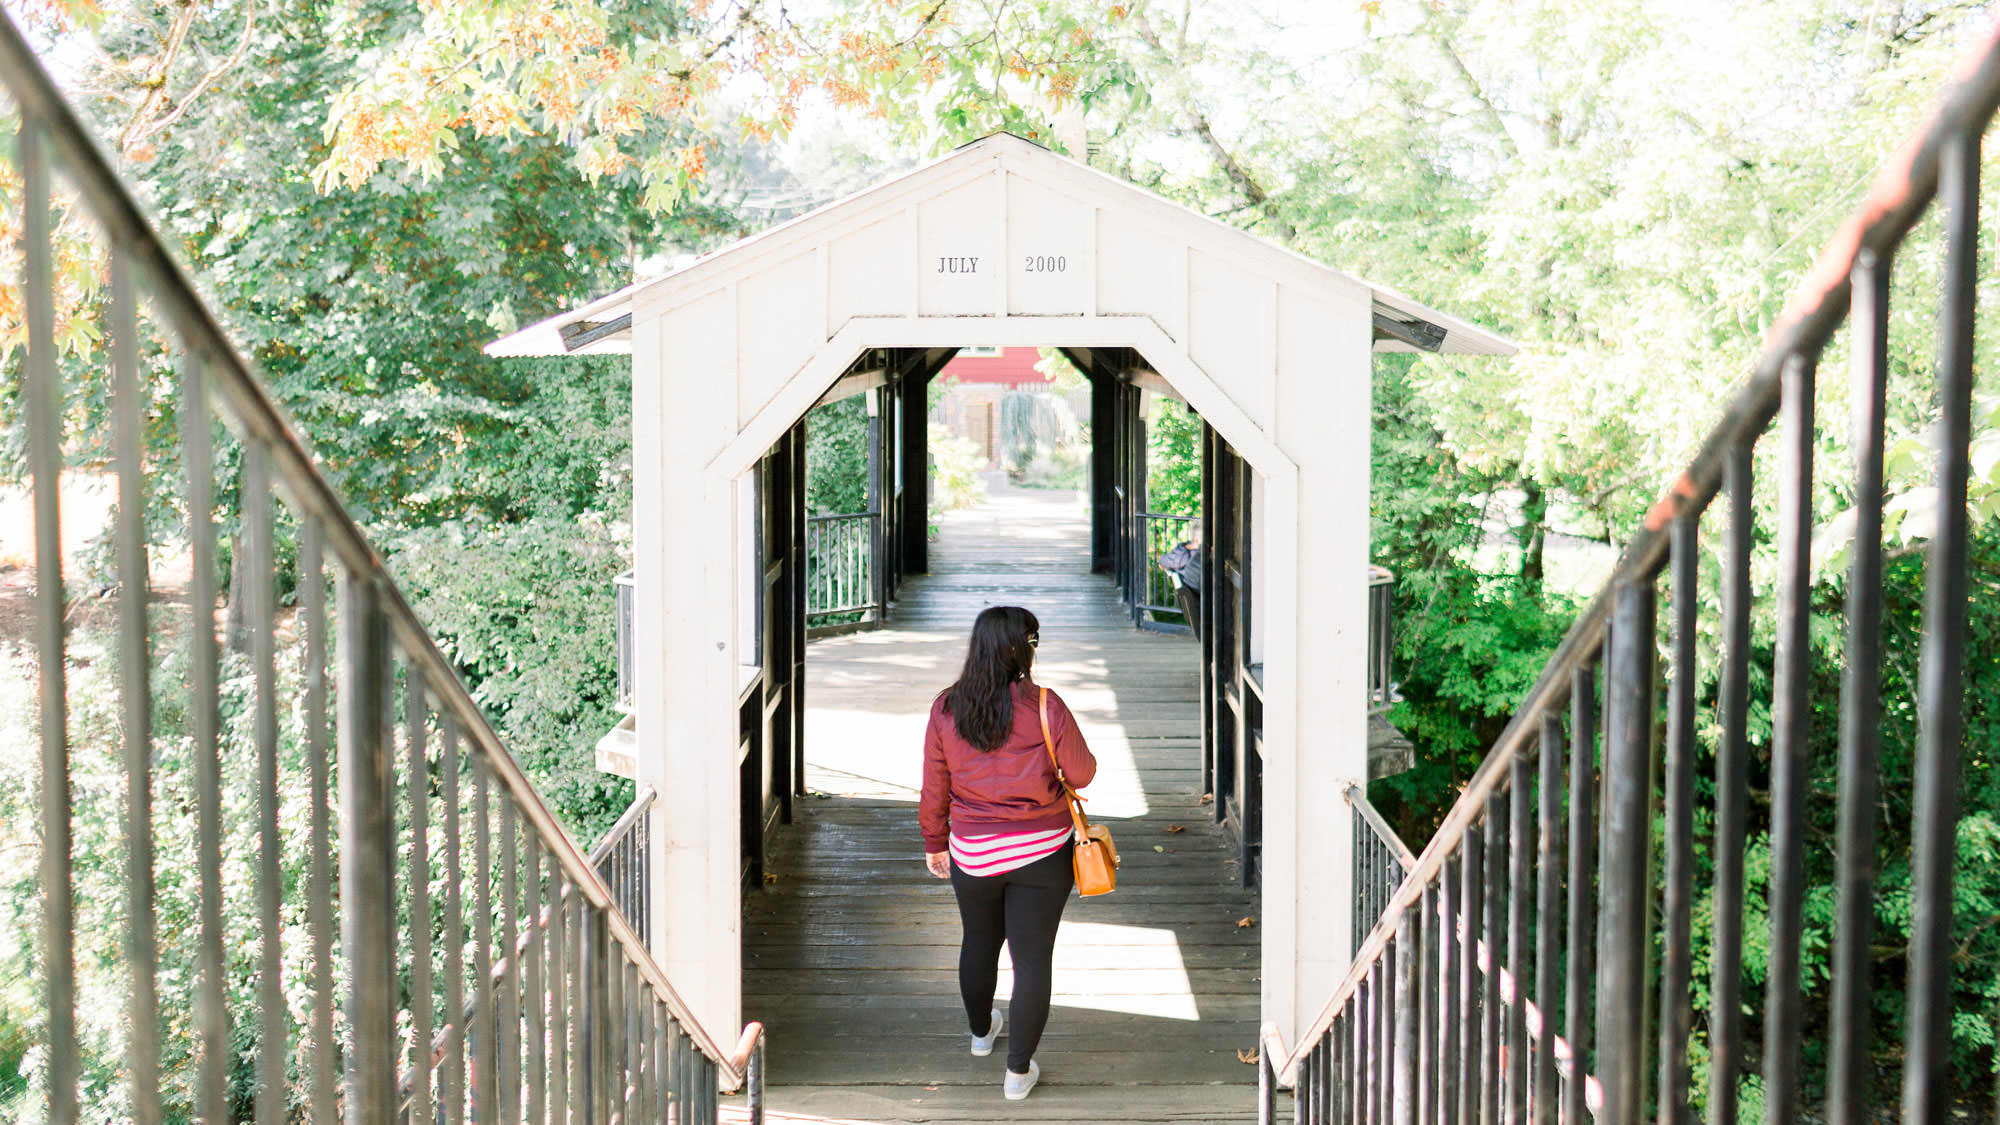 A girl walks down stairs into a covered bridge.